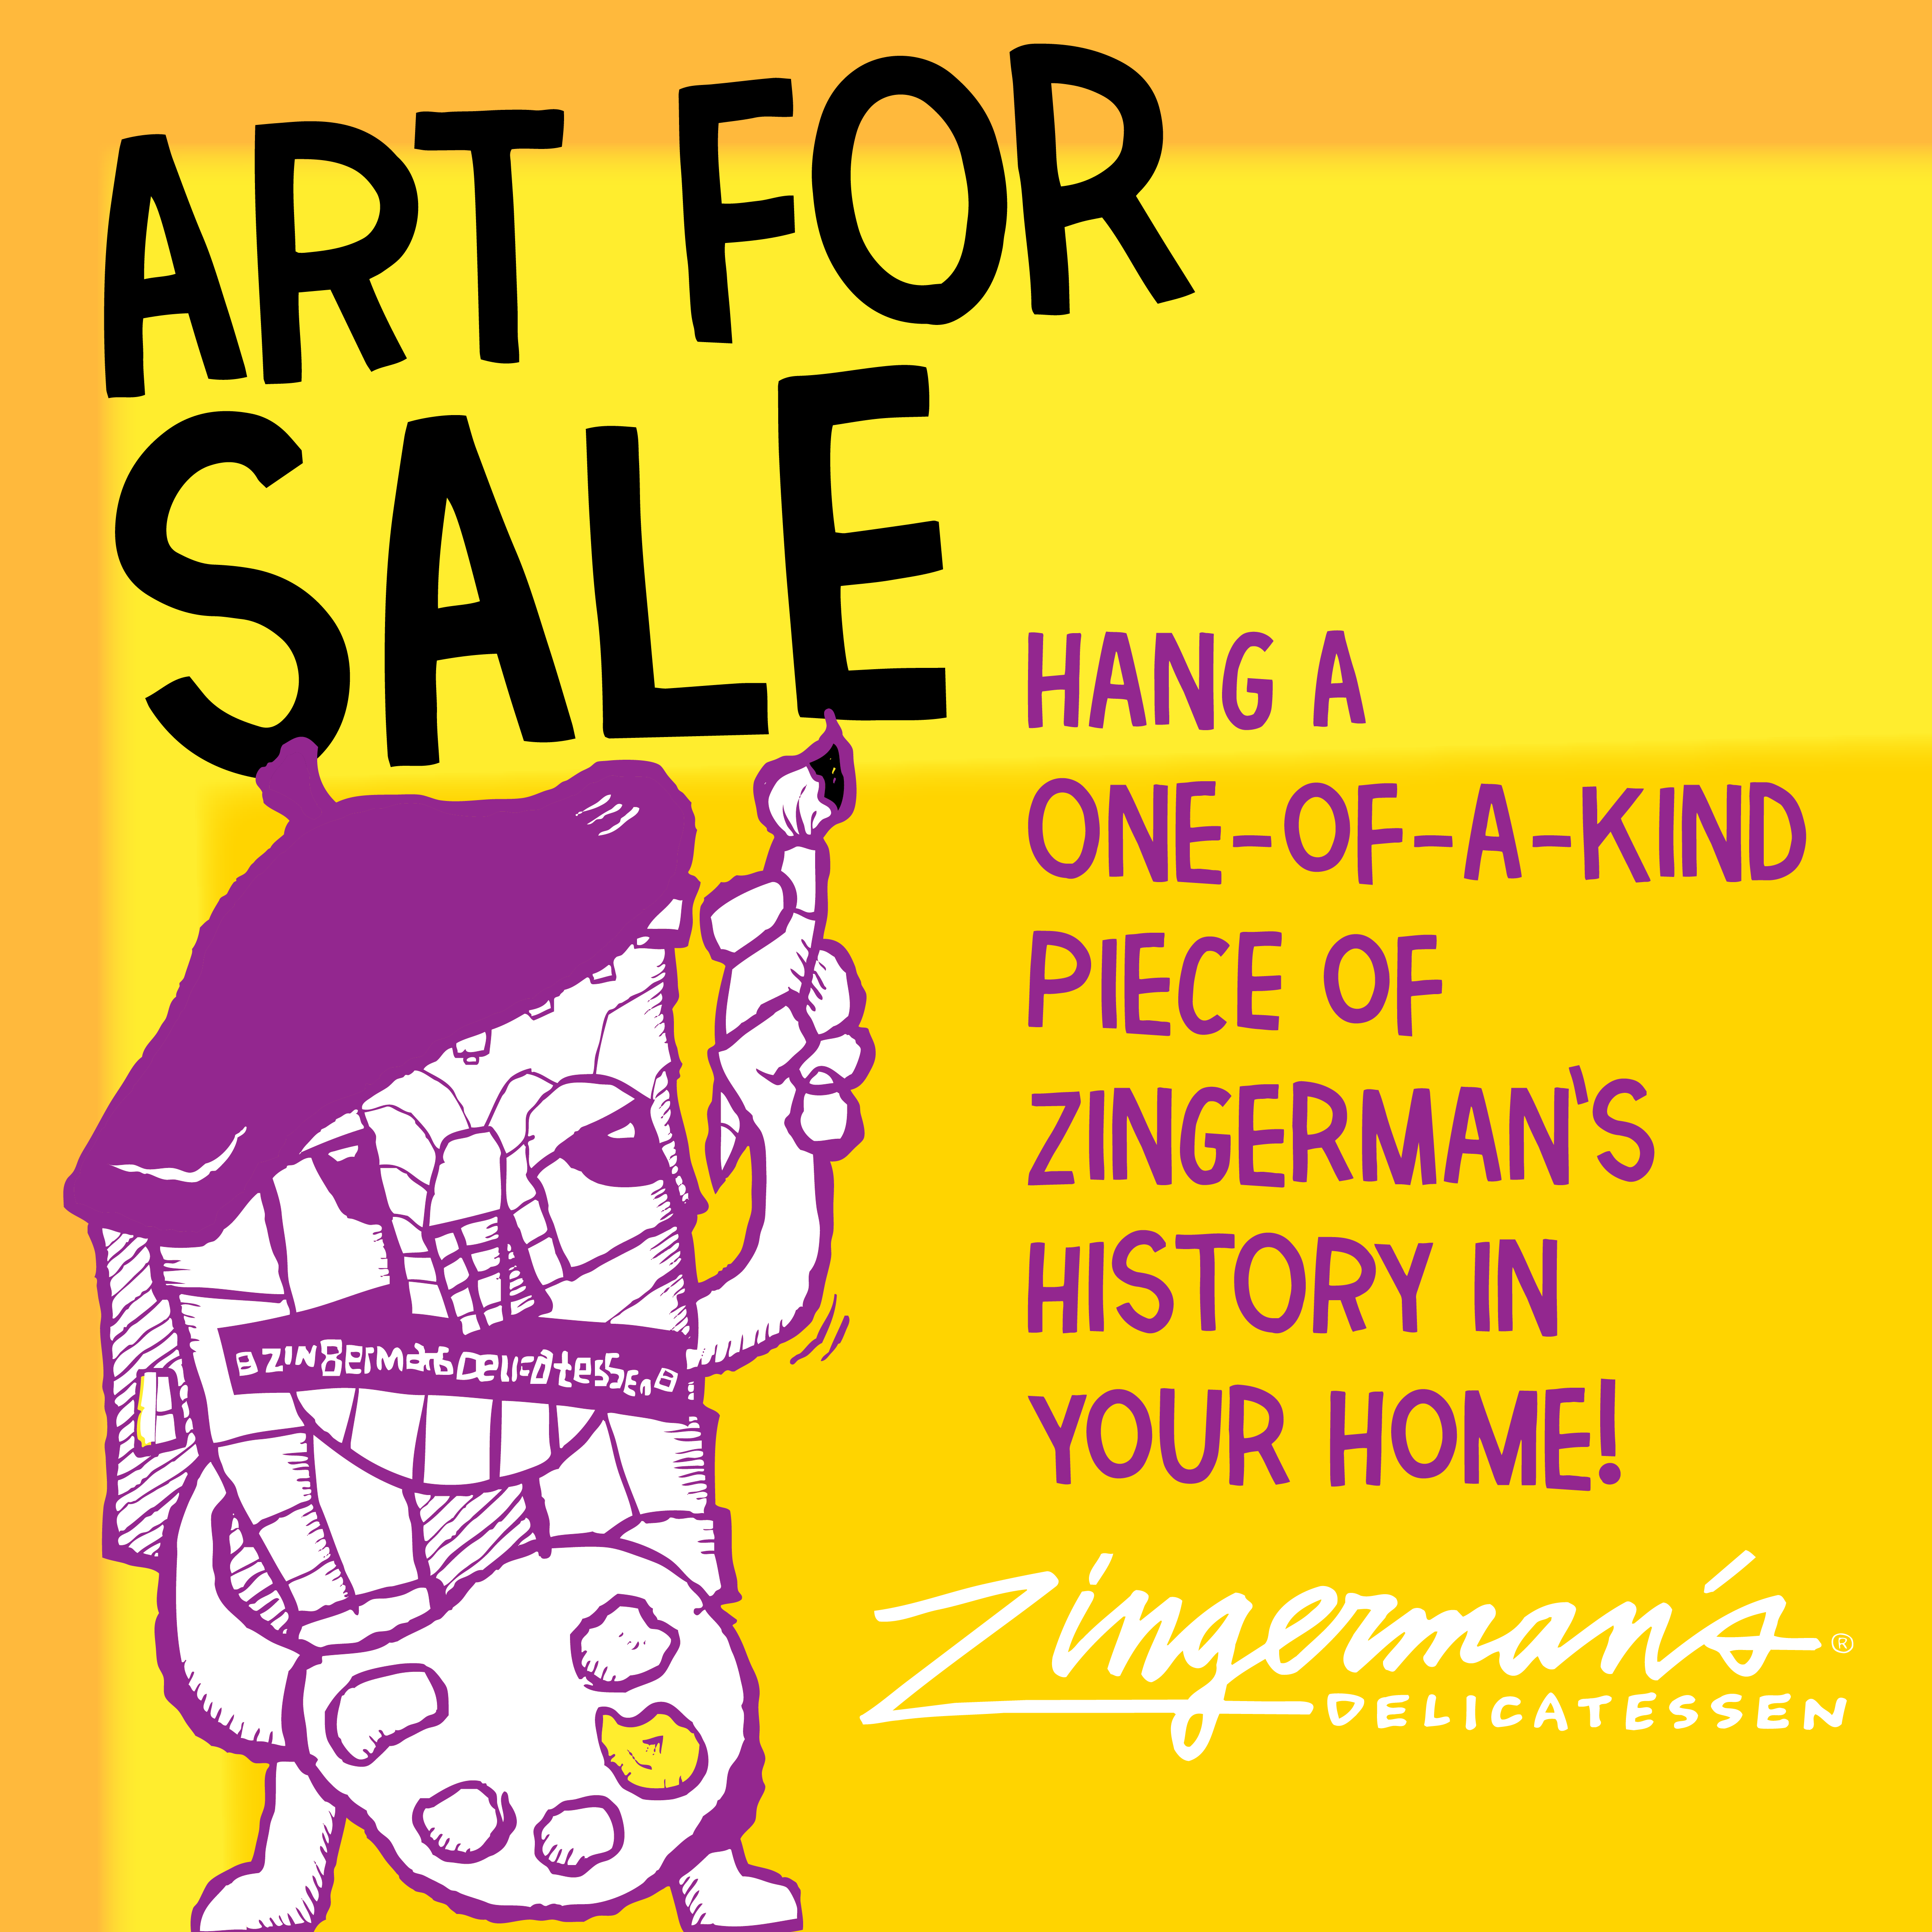 art for sale - hang a one of a kind piece of zingerman's art in your home